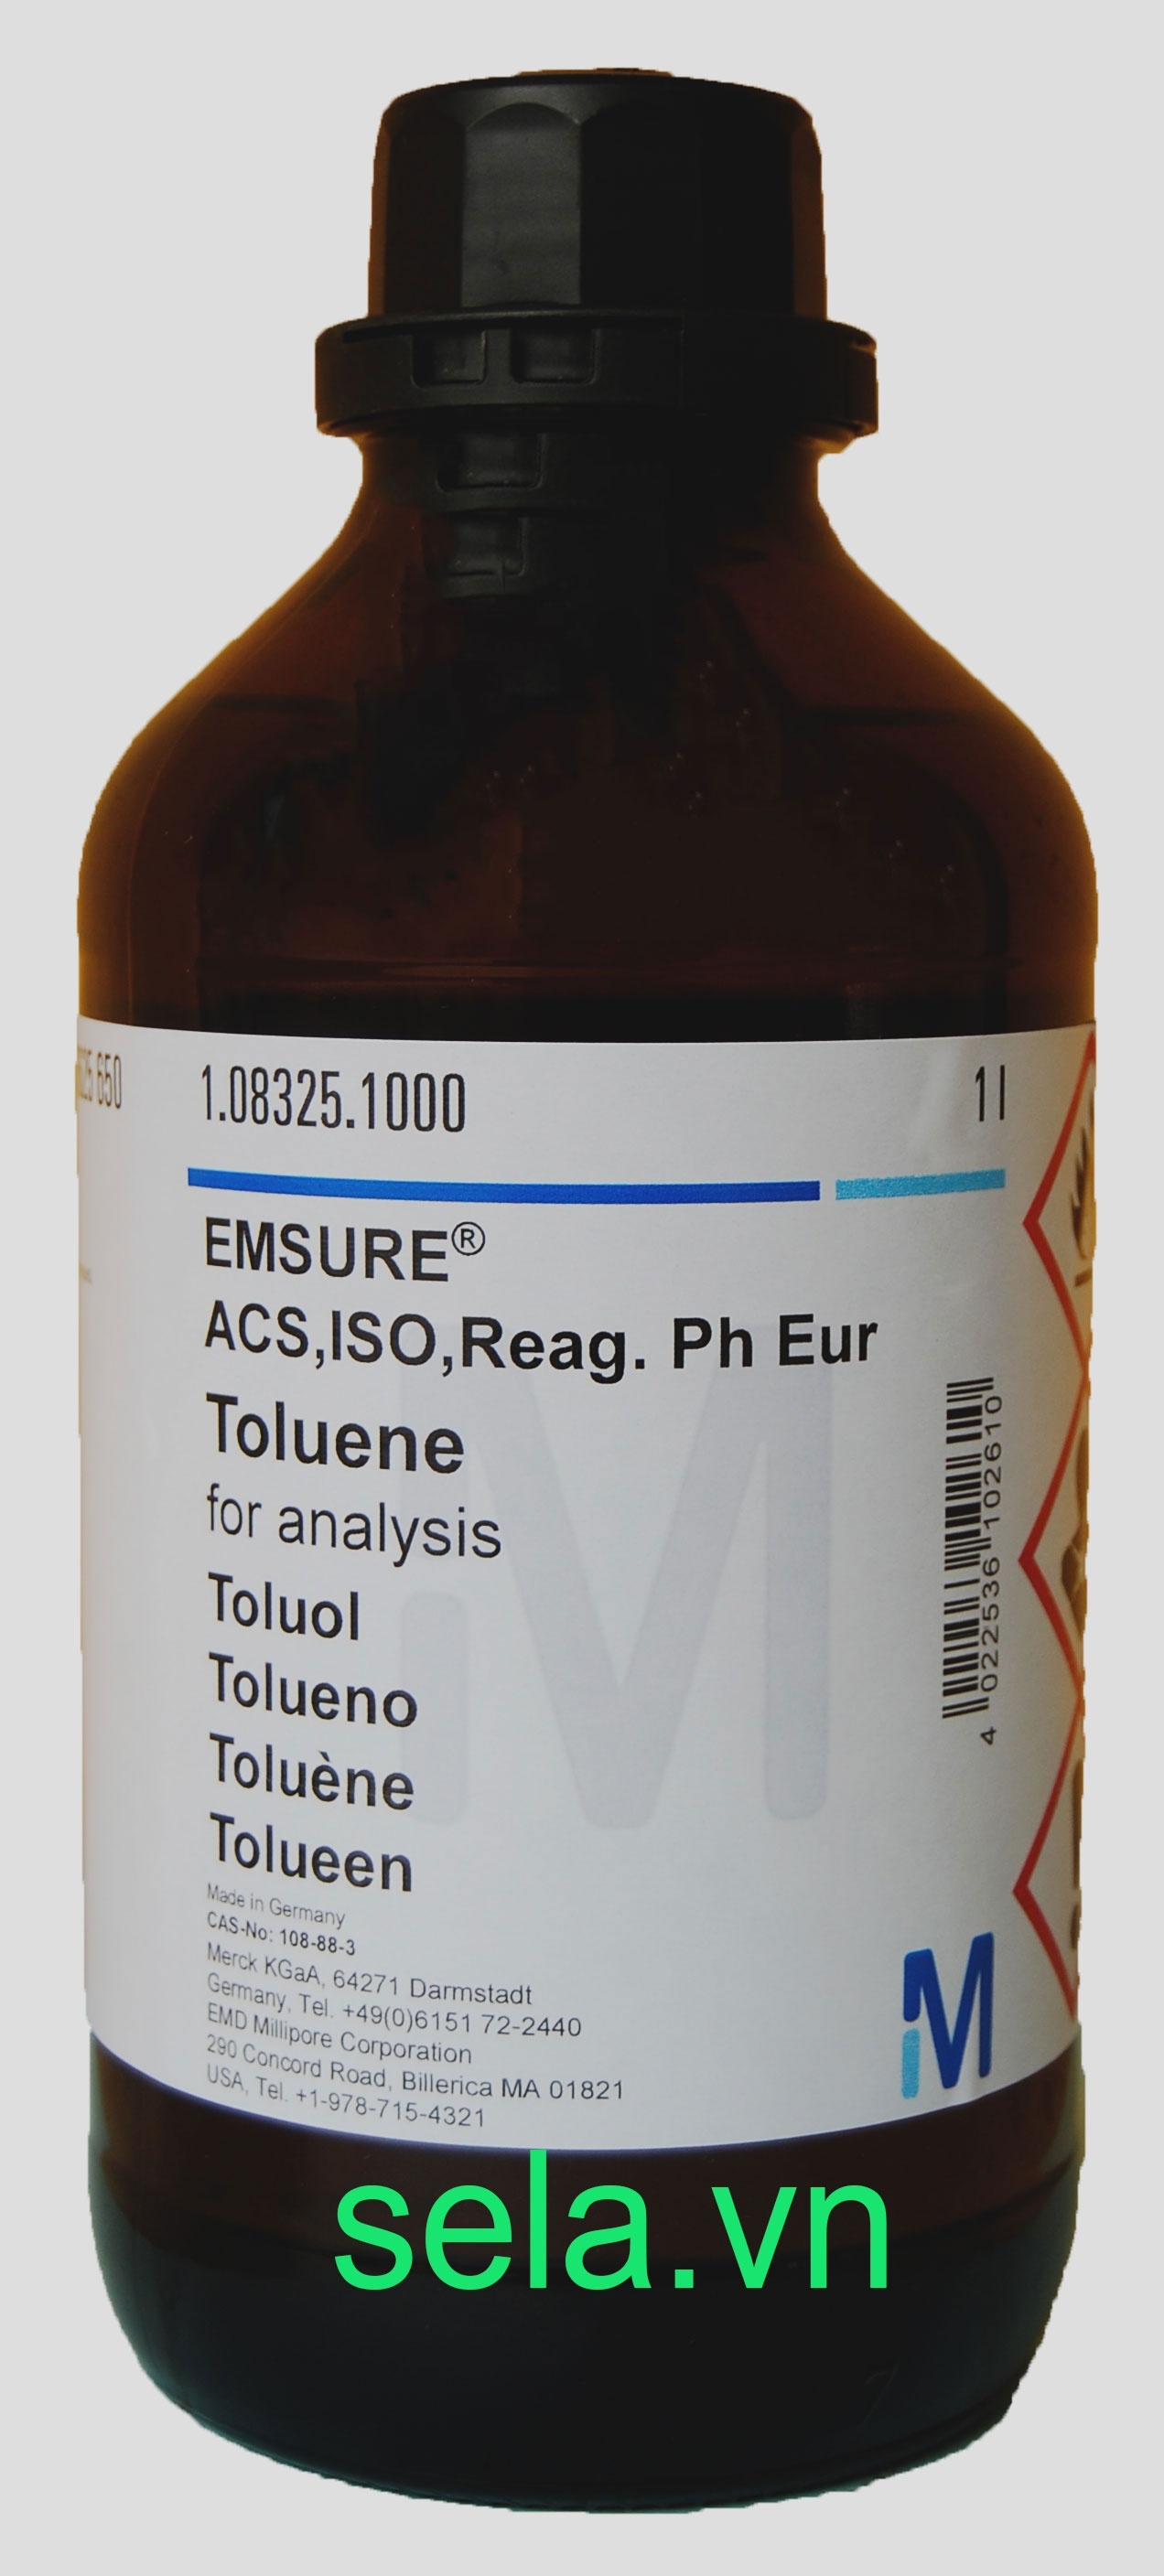 Toluene for analysis EMSURE® ACS,ISO,Reag. Ph Eur